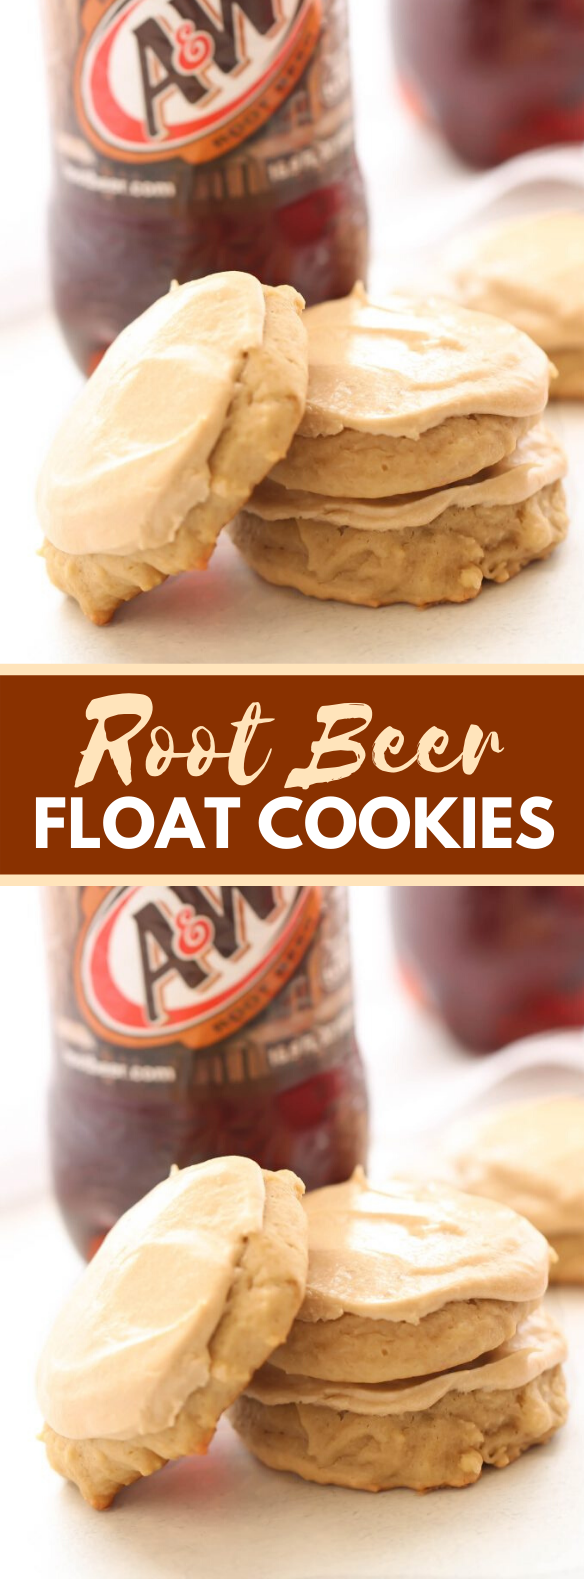 ROOT BEER FLOAT COOKIES #desserts #sweets #cookies #rootbeer #cream #rootbeerfloat